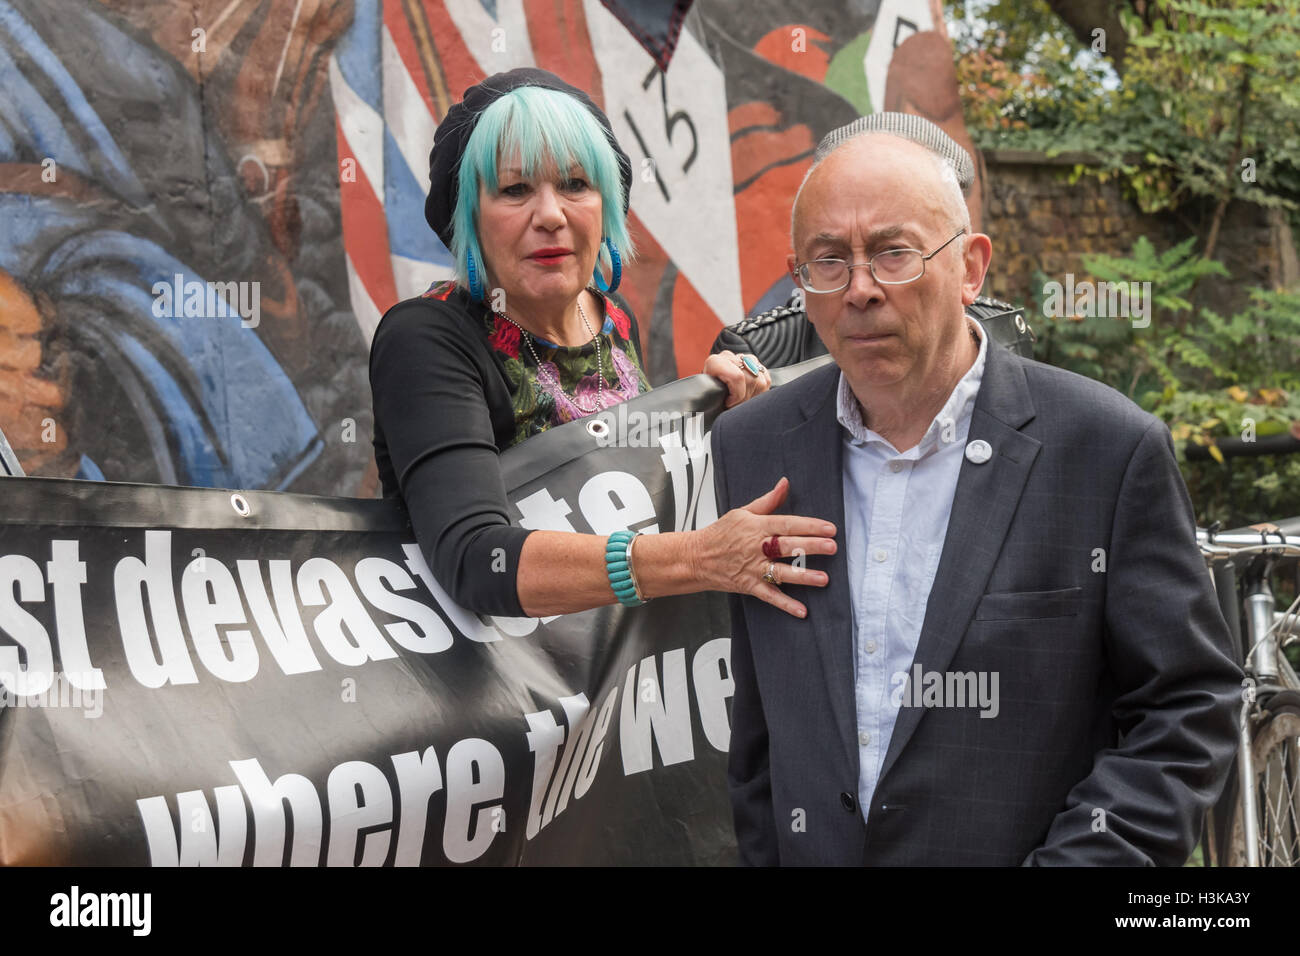 London, UK. 9th October 2016. Jane Nicholl and Ian Bone of Class War at their rally in  front of the Cable St mural. - Stock Image